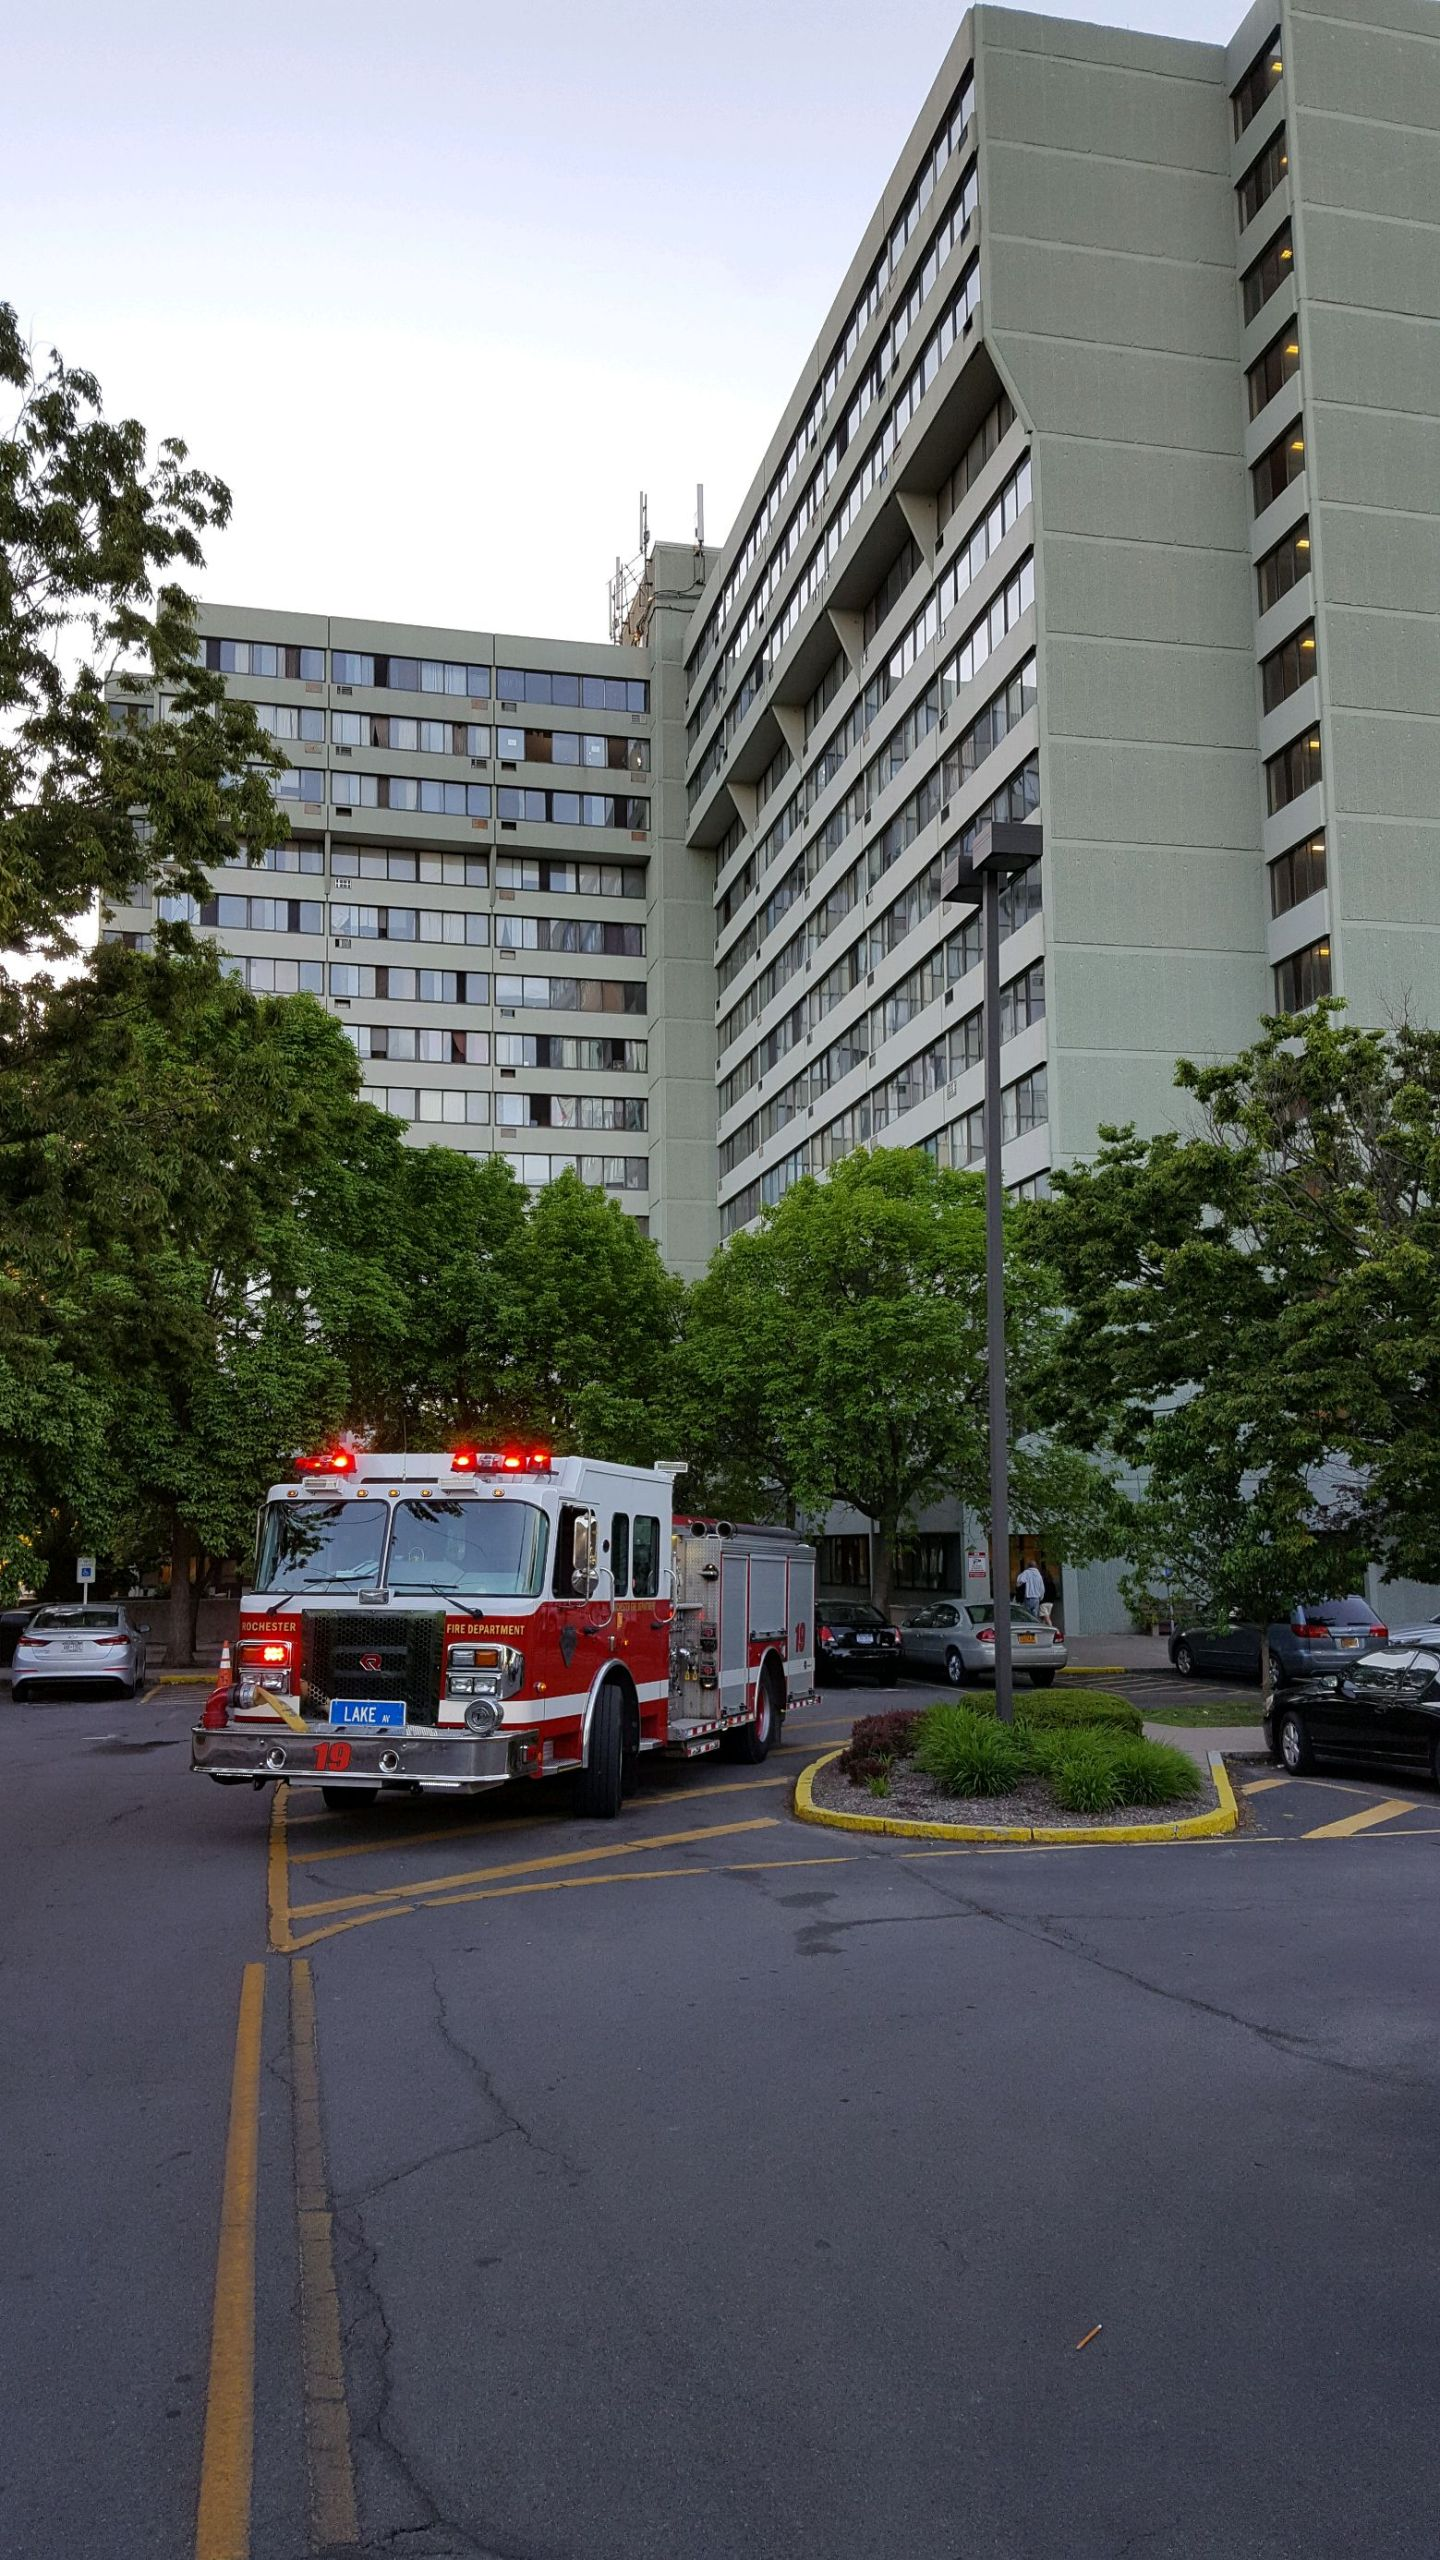 Fire at Charlotte Harbortown Homes_1496453020741.jpg